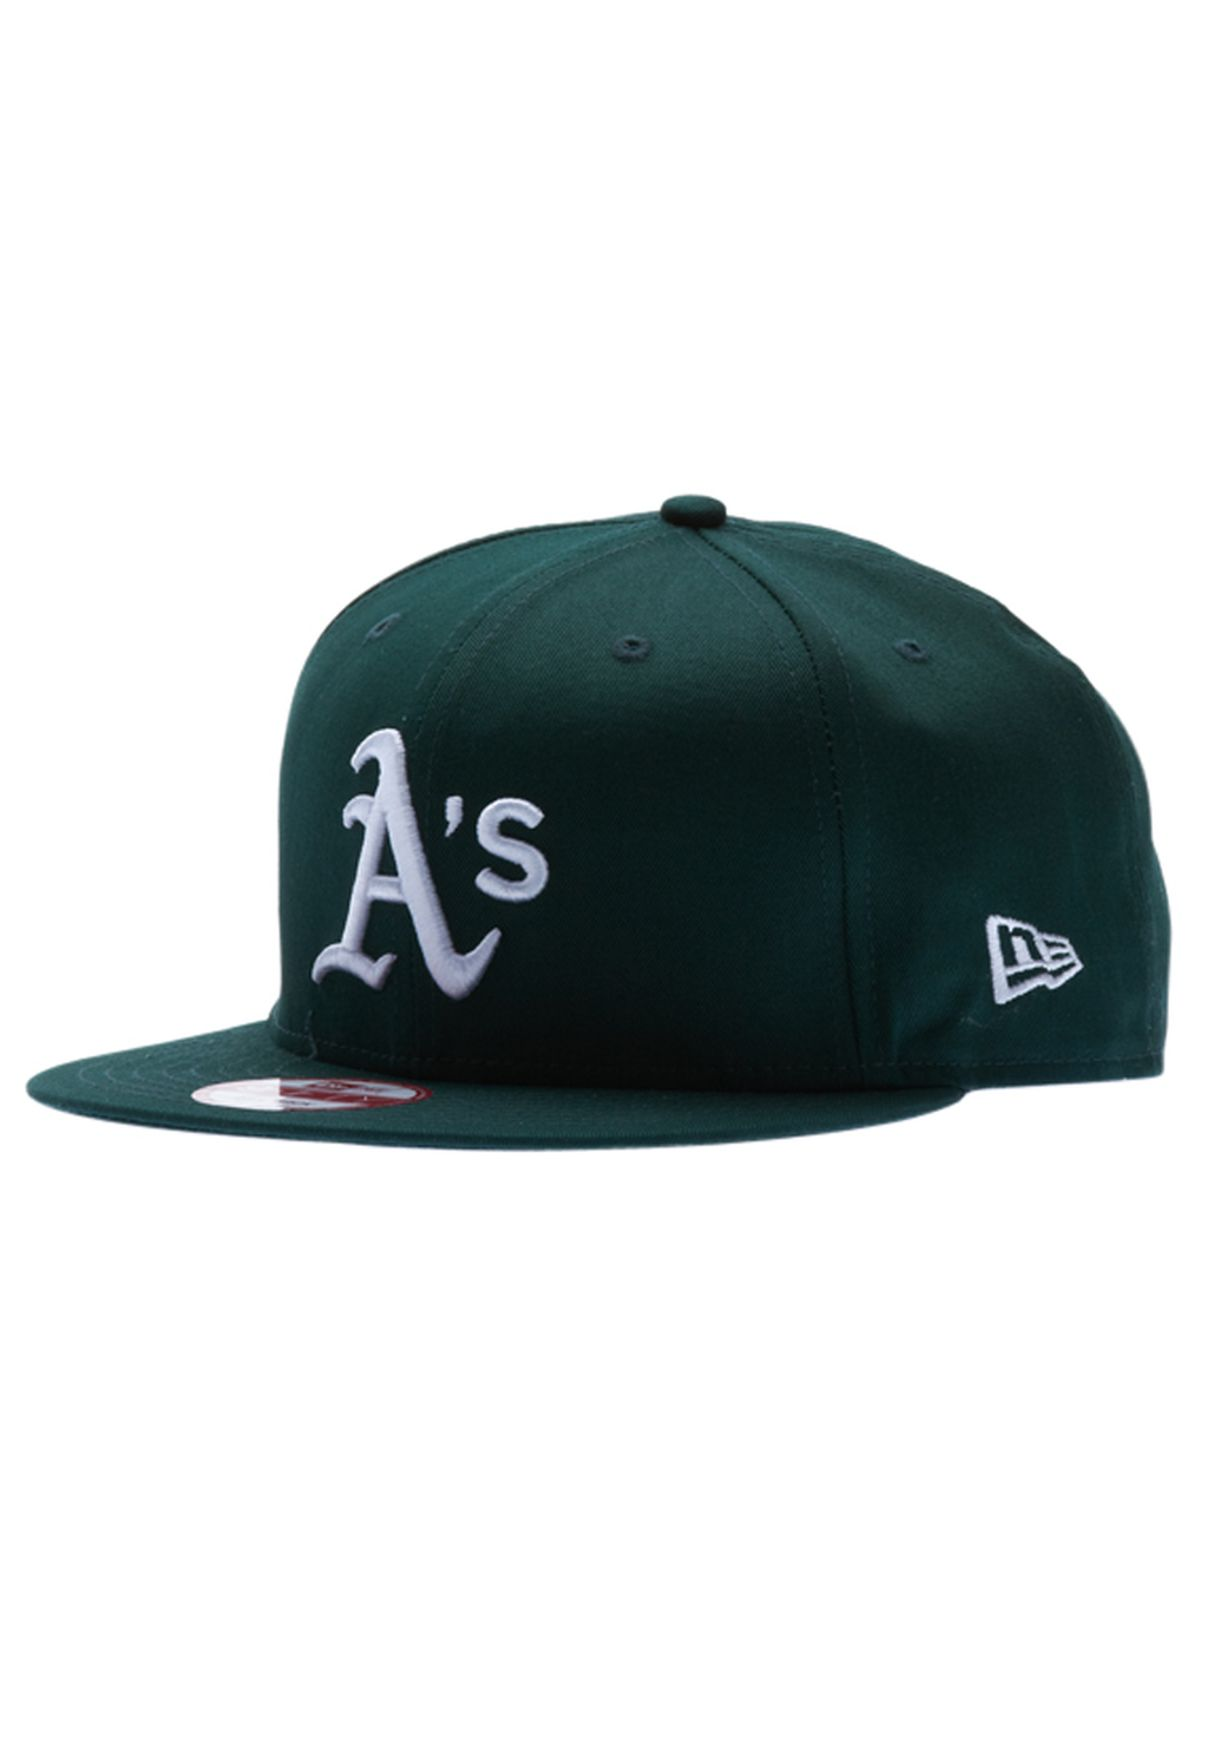 8022ce576 Shop New Era green Oakland Athletics Cap for Men in UAE - NE207AC57DVQ